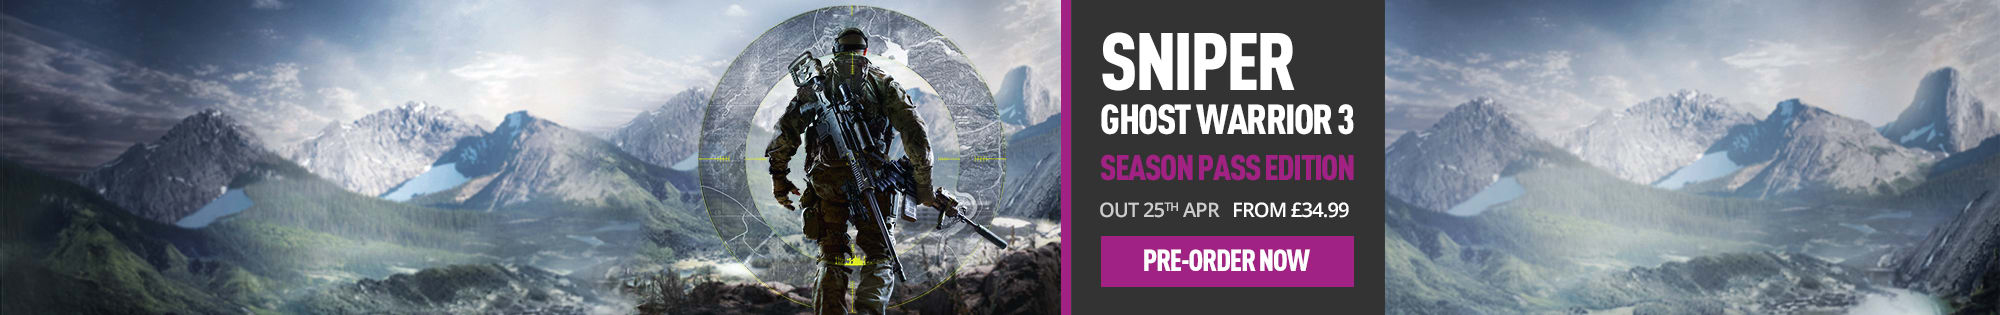 Sniper Ghost Warrior 3 Season Pass Edition for Xbox One and PS4